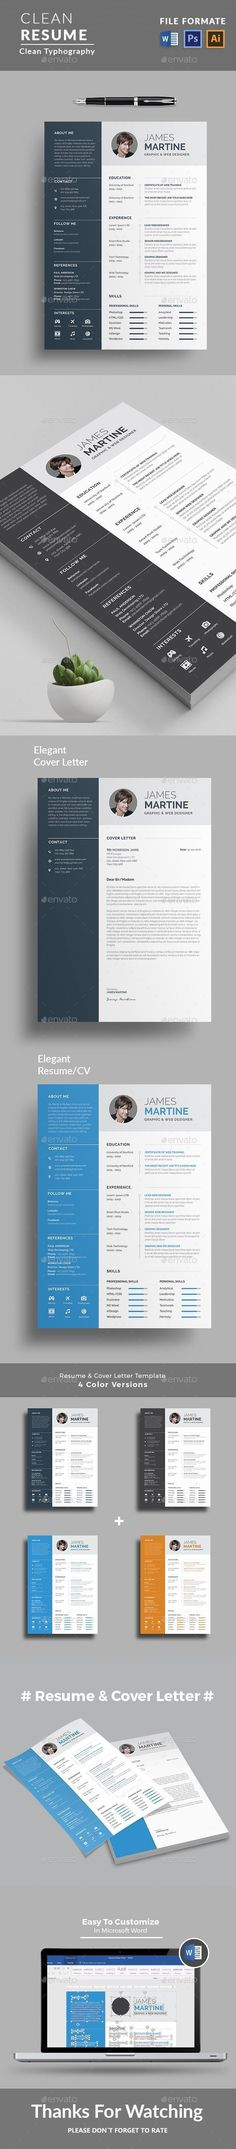 Medical Assistant Resume Template u2013 8+ Free Word, Excel, PDF - resume template excel